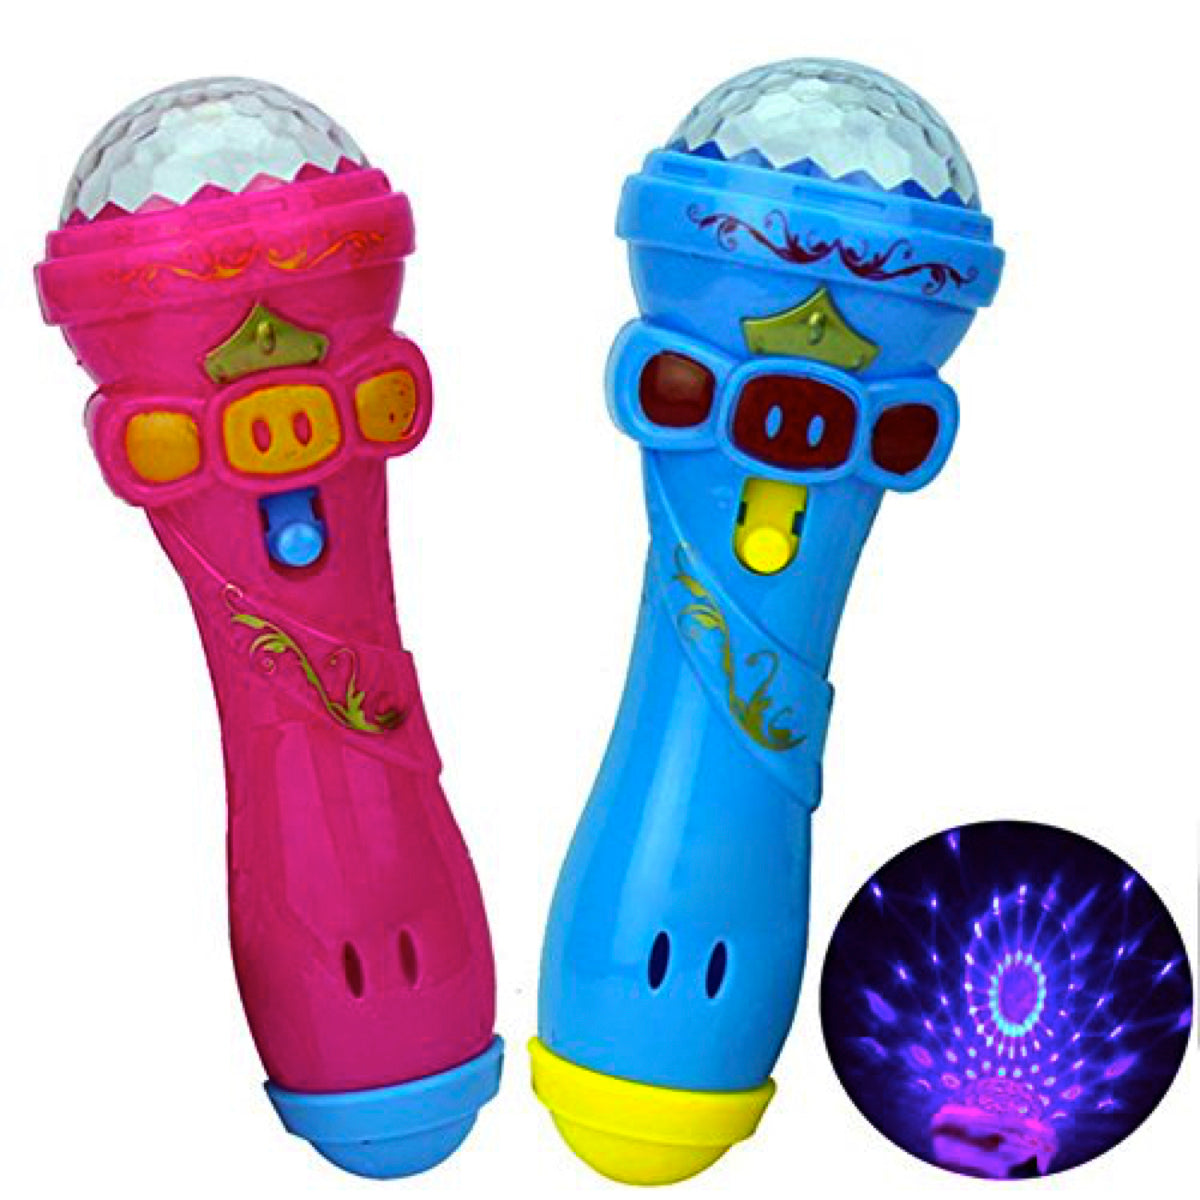 Karaoke Fun Light-Up & Play Toy Microphone- Blue or Pink